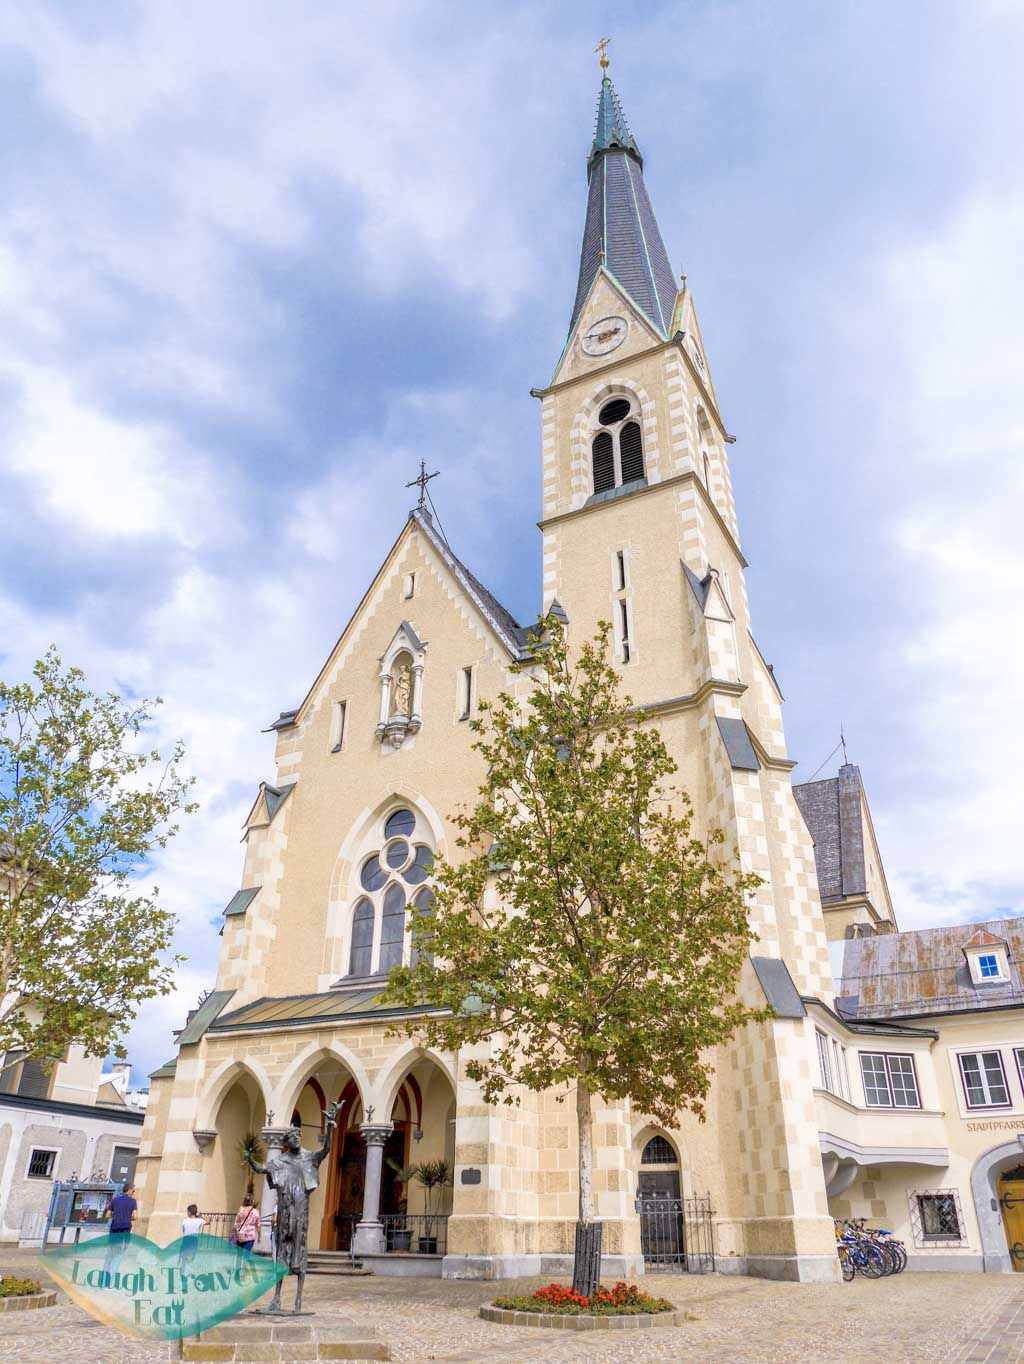 St-Nicholas-Church-Villach-Austria-Laugh-Travel-Eat